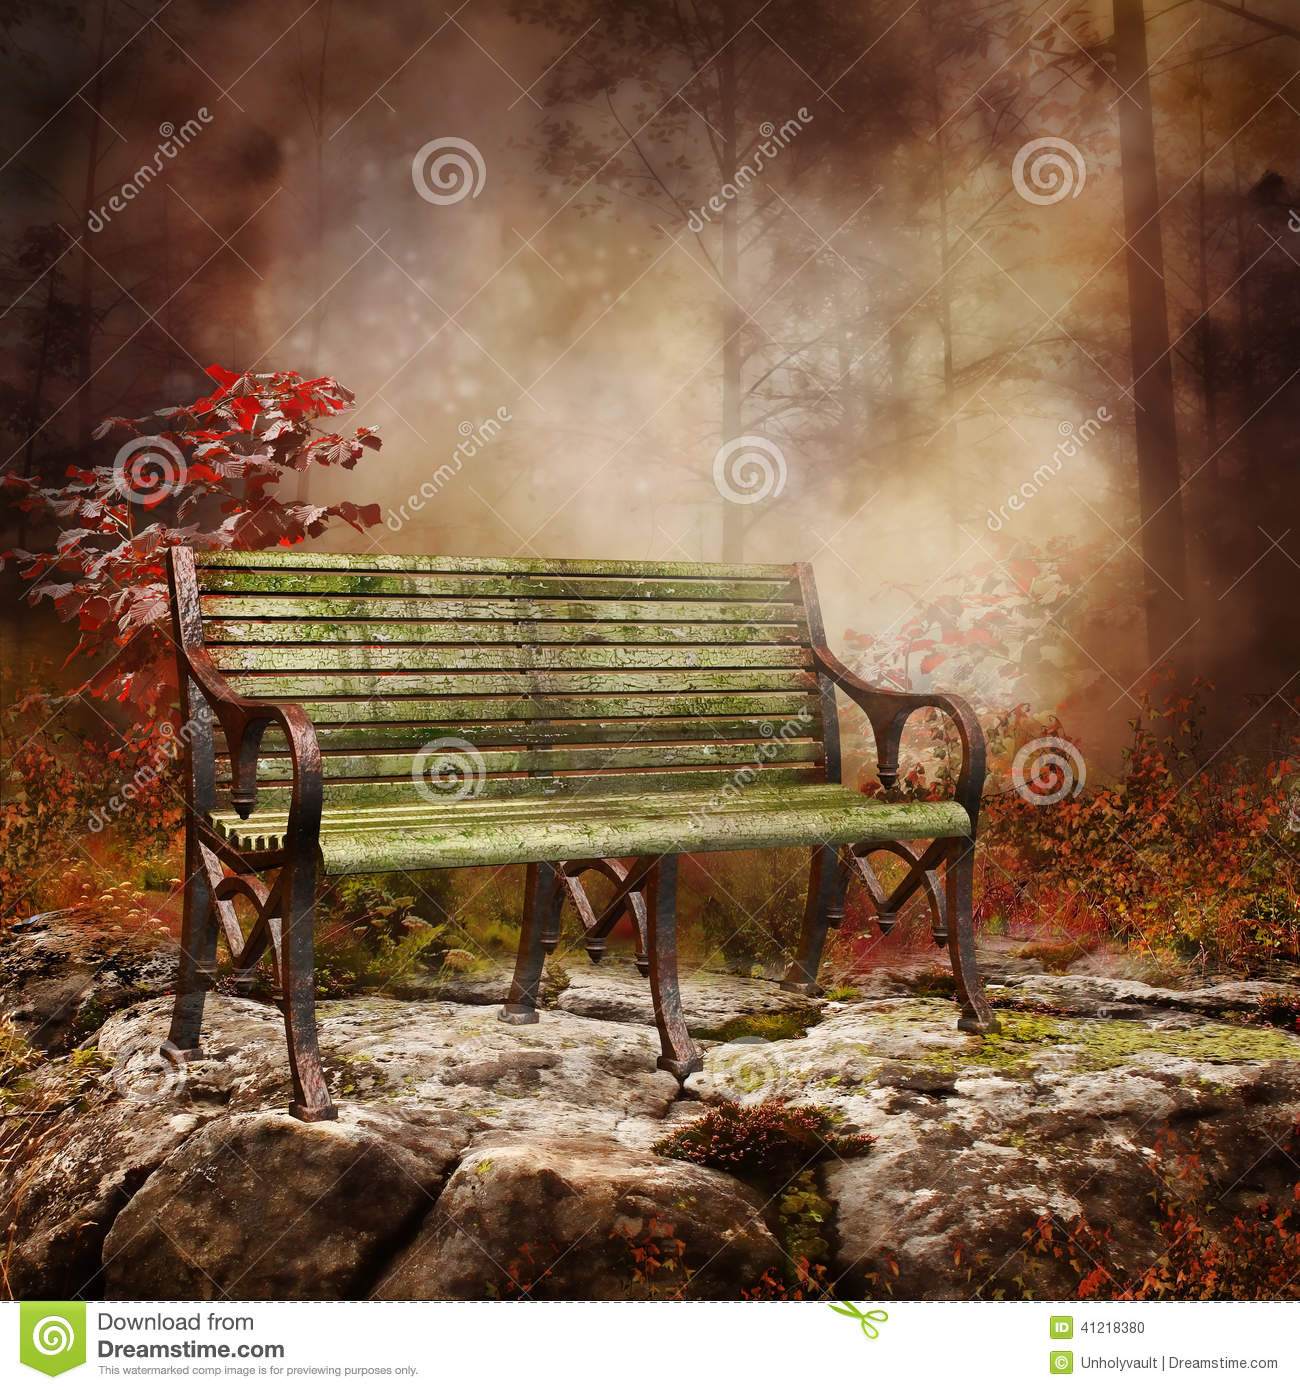 Bench on a rock